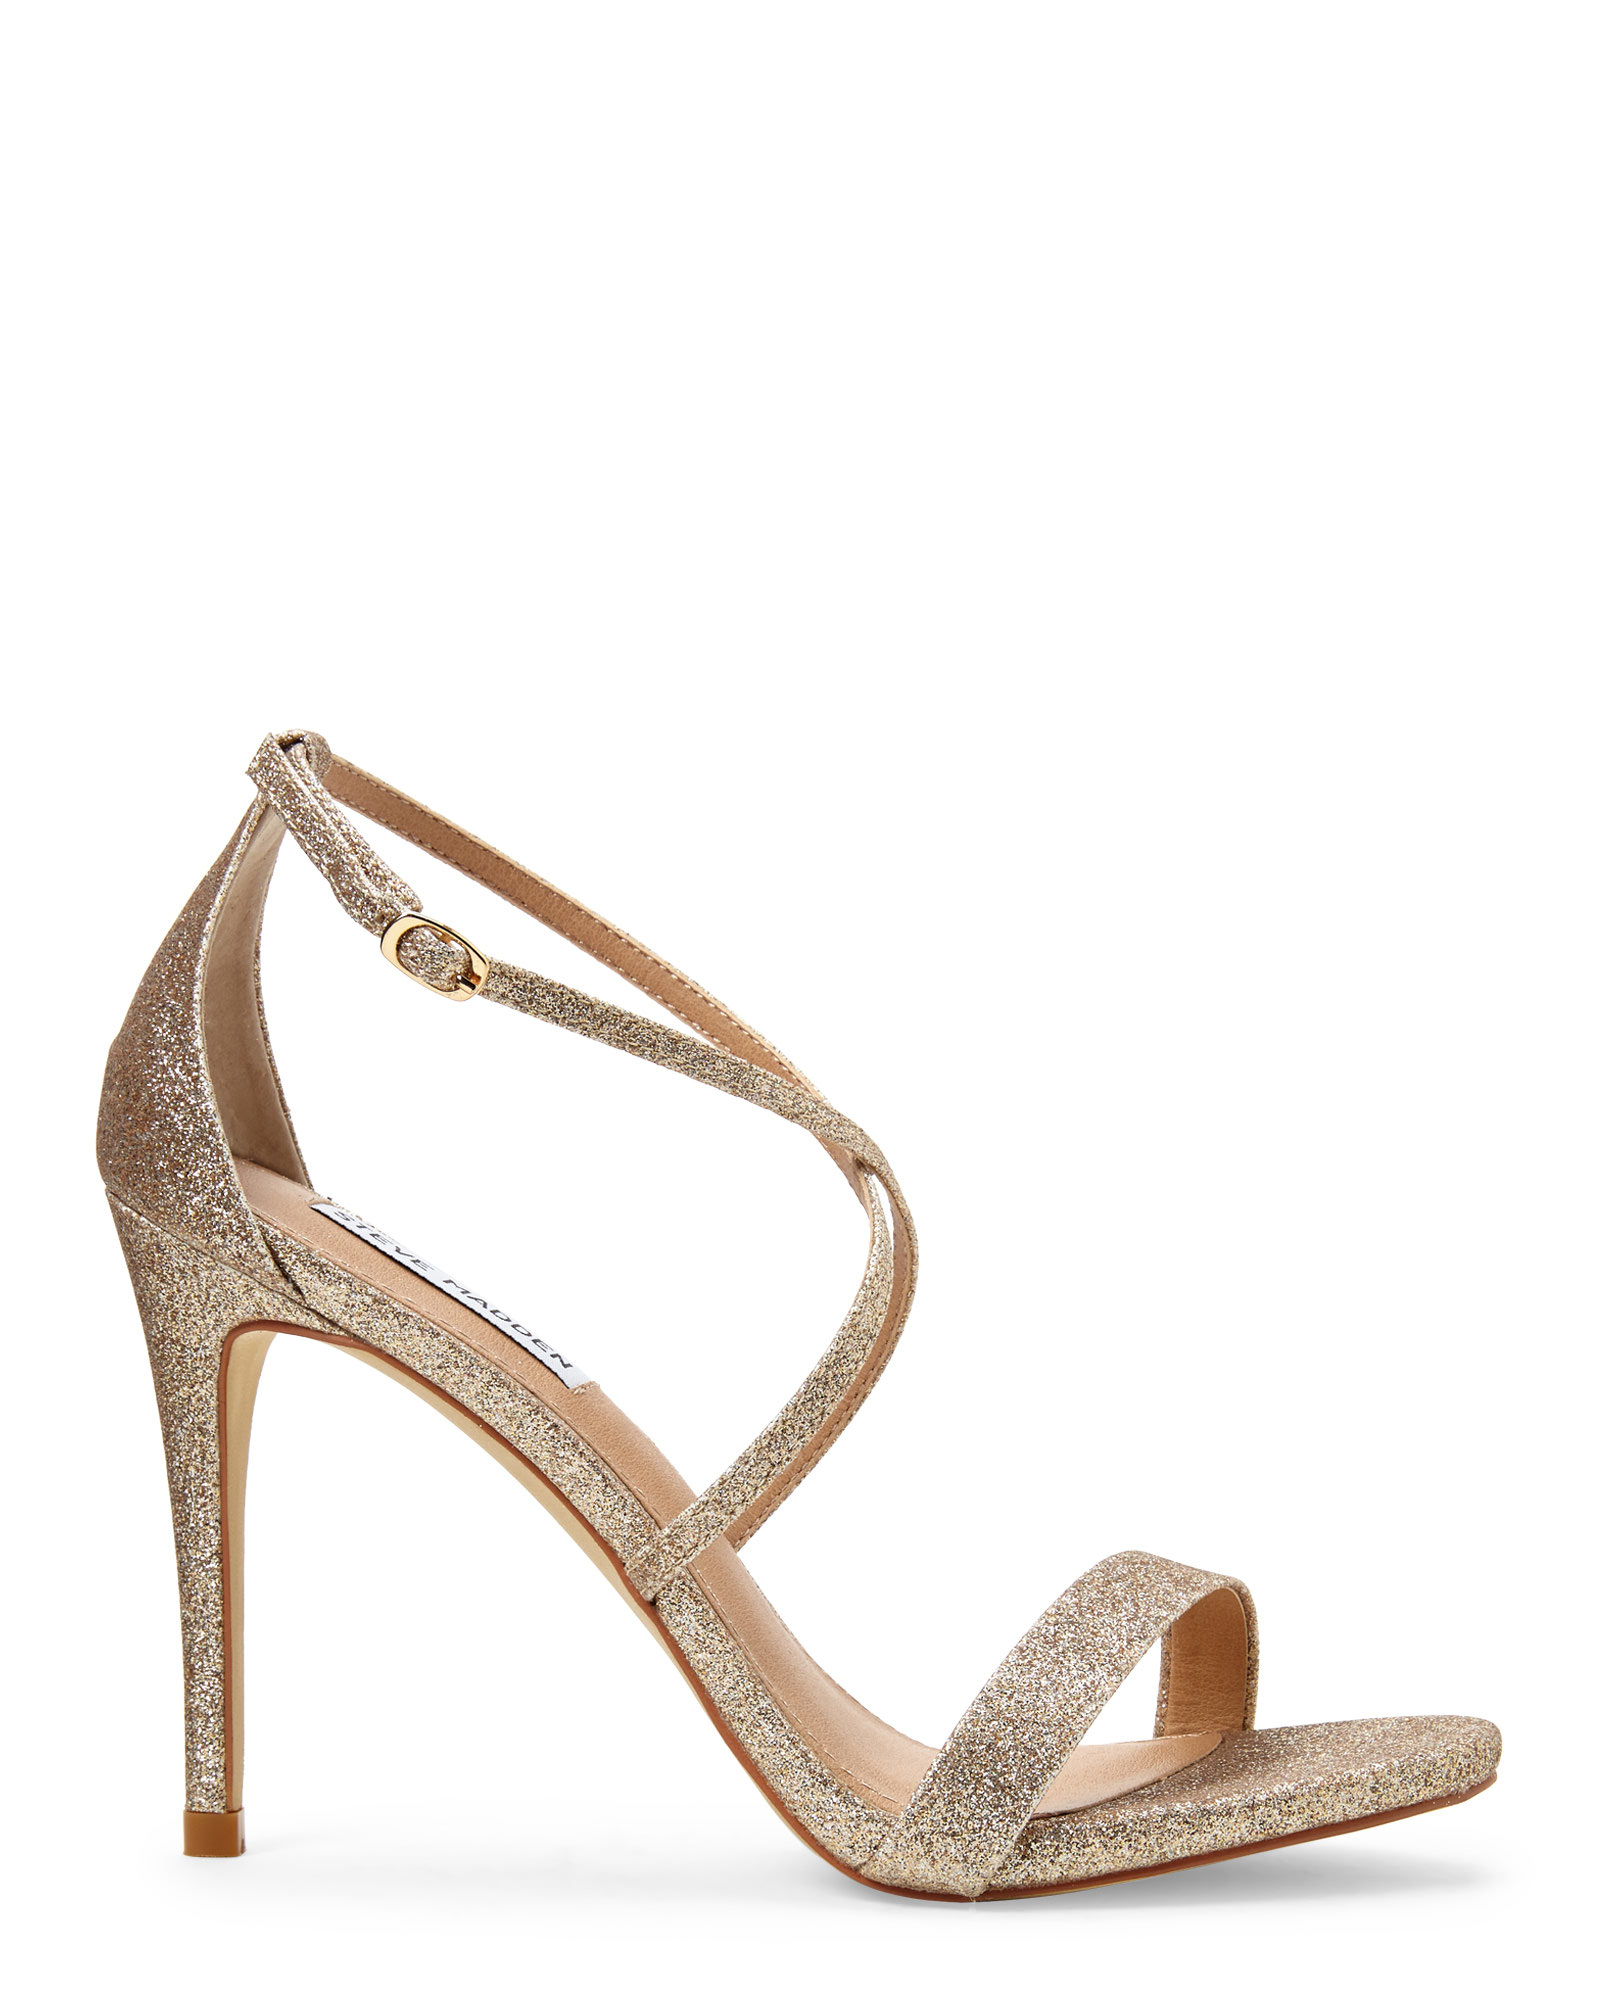 Steve madden Gold Feliz Strappy Sandals in Metallic | Lyst